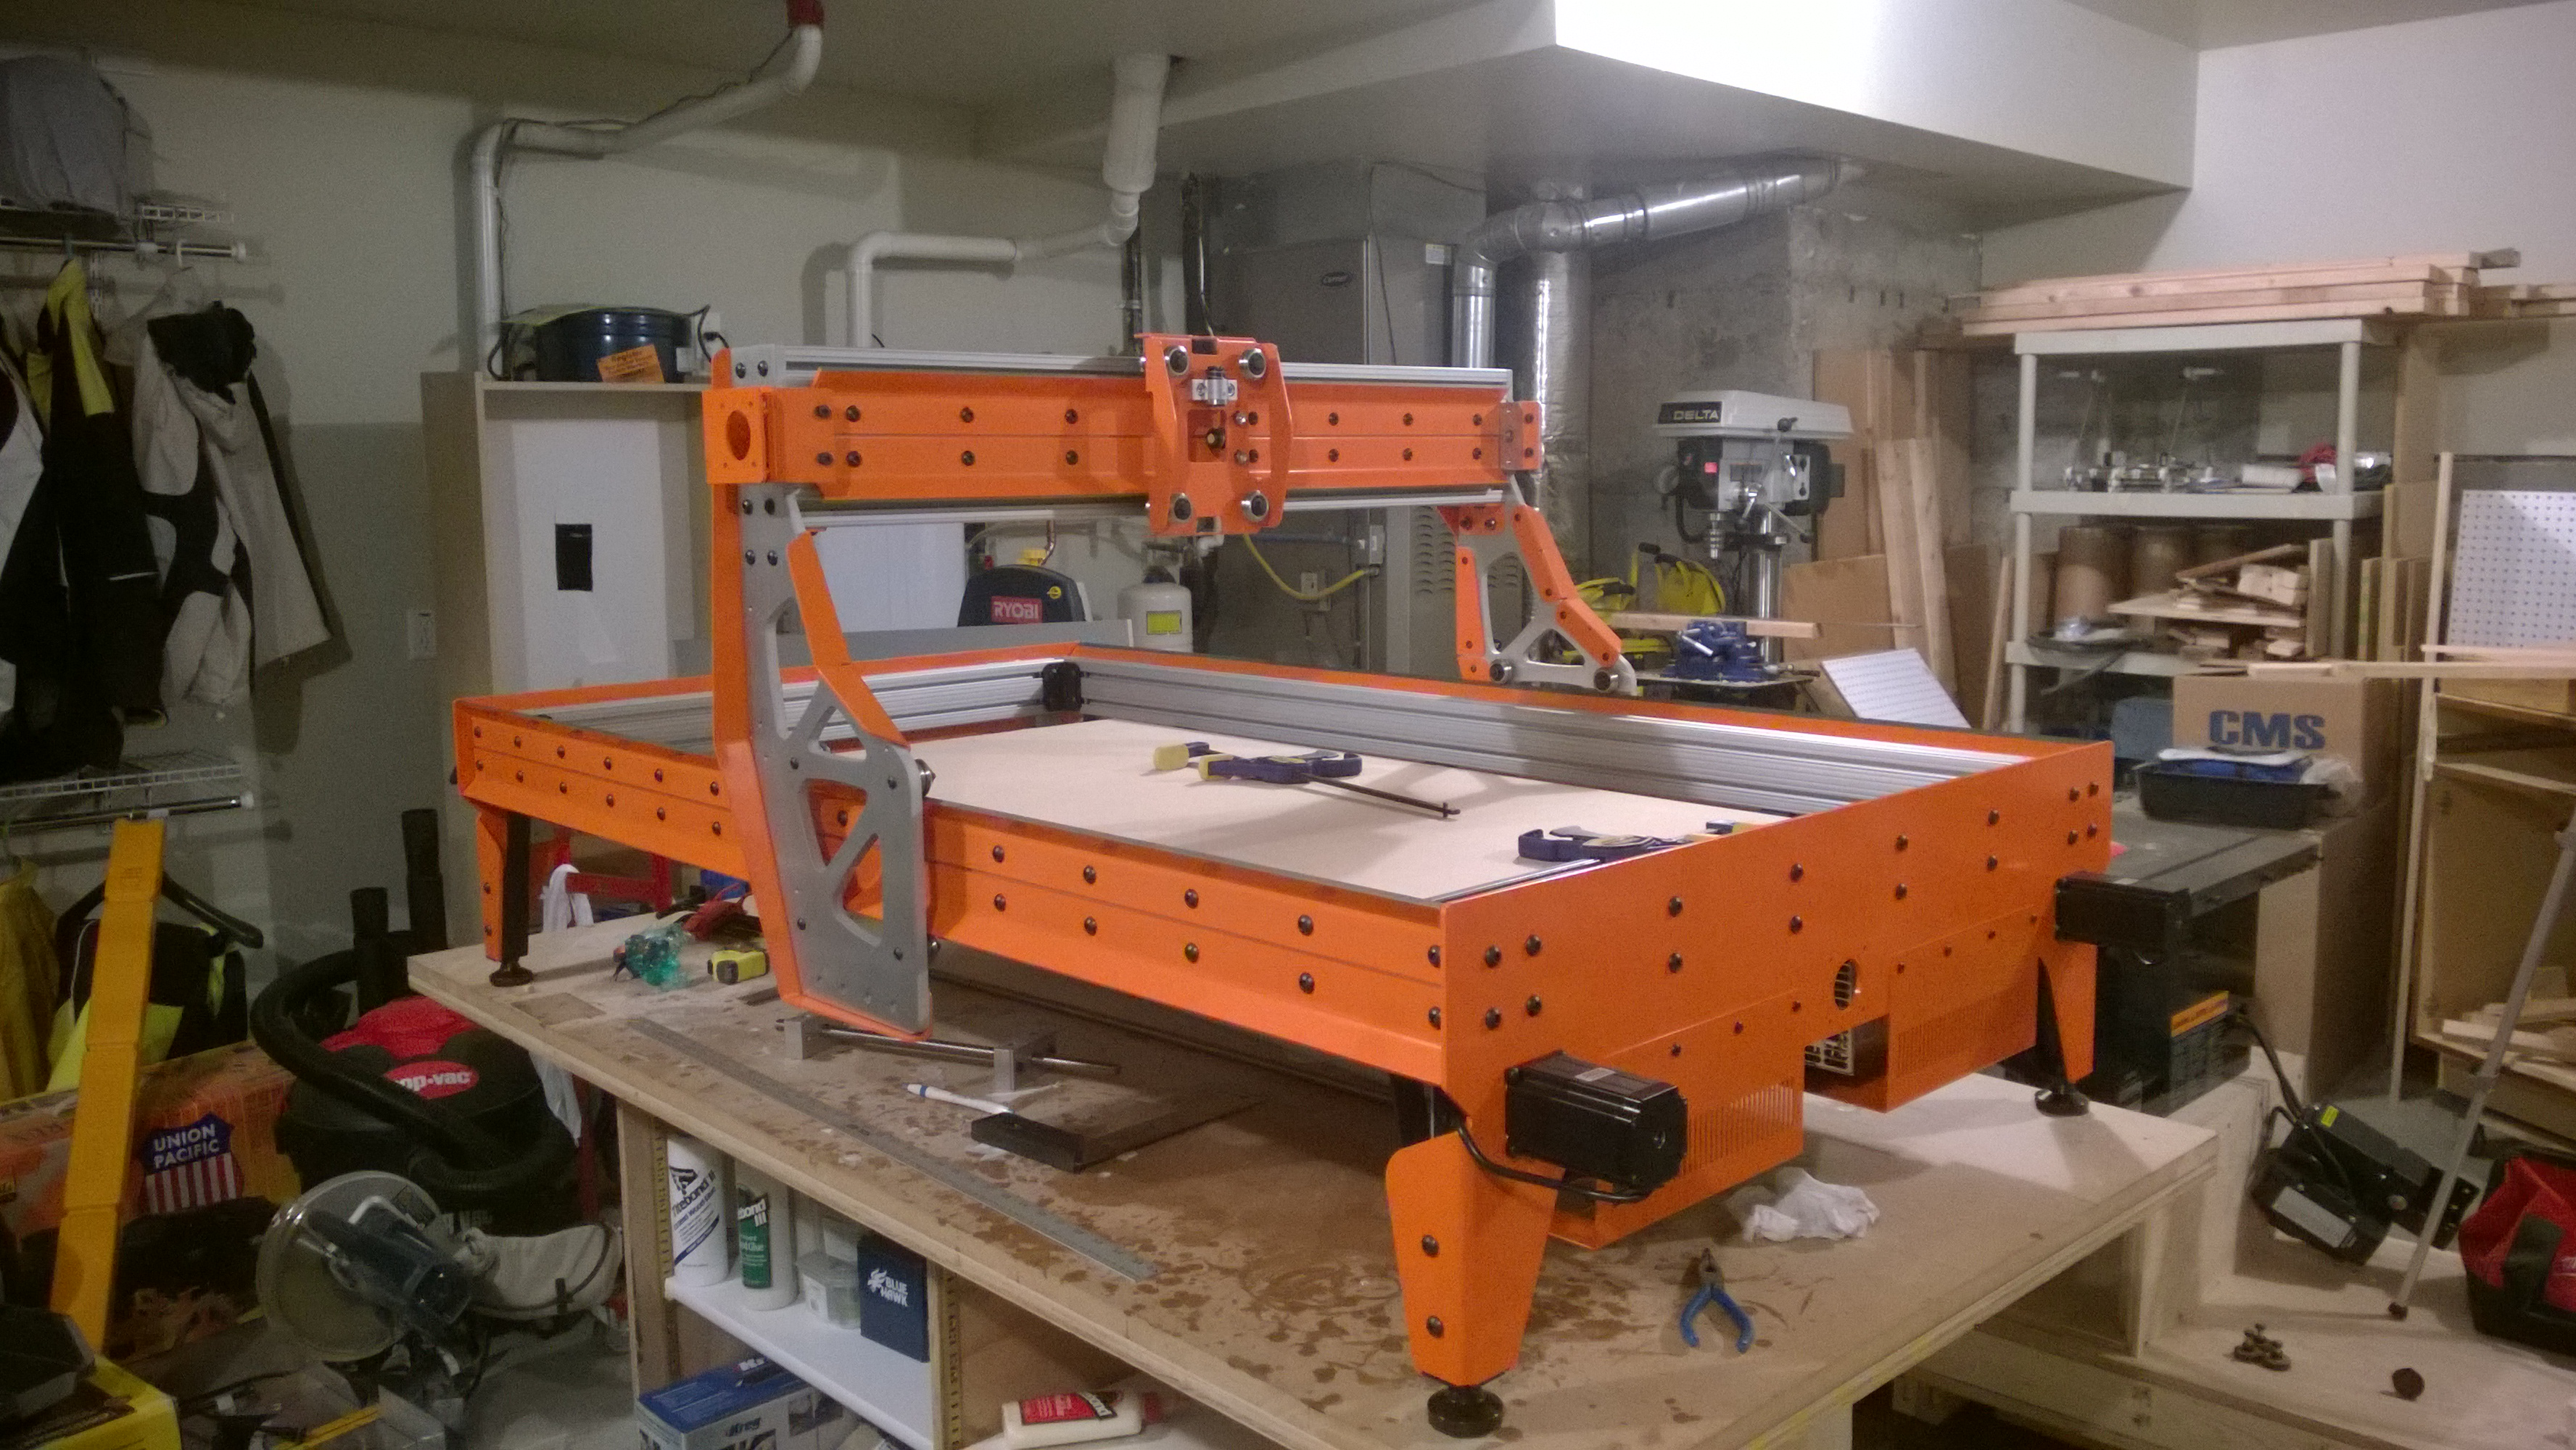 Platform Cnc William A Adams Diy Mill Wp 20150122 0031